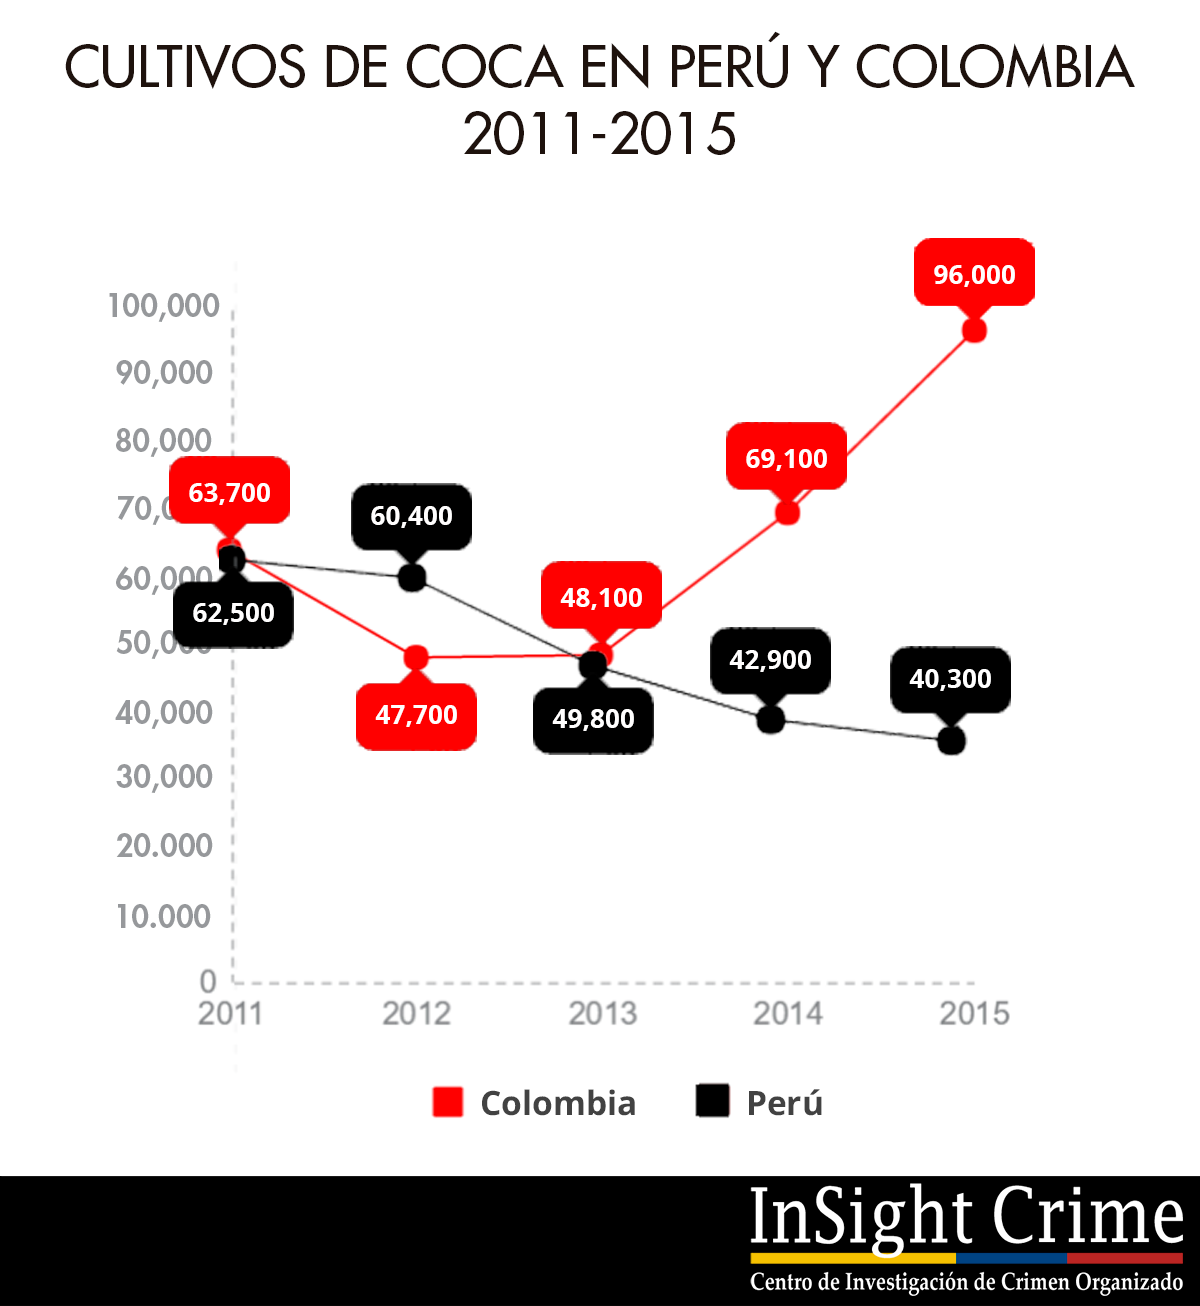 graphic peru y colombia